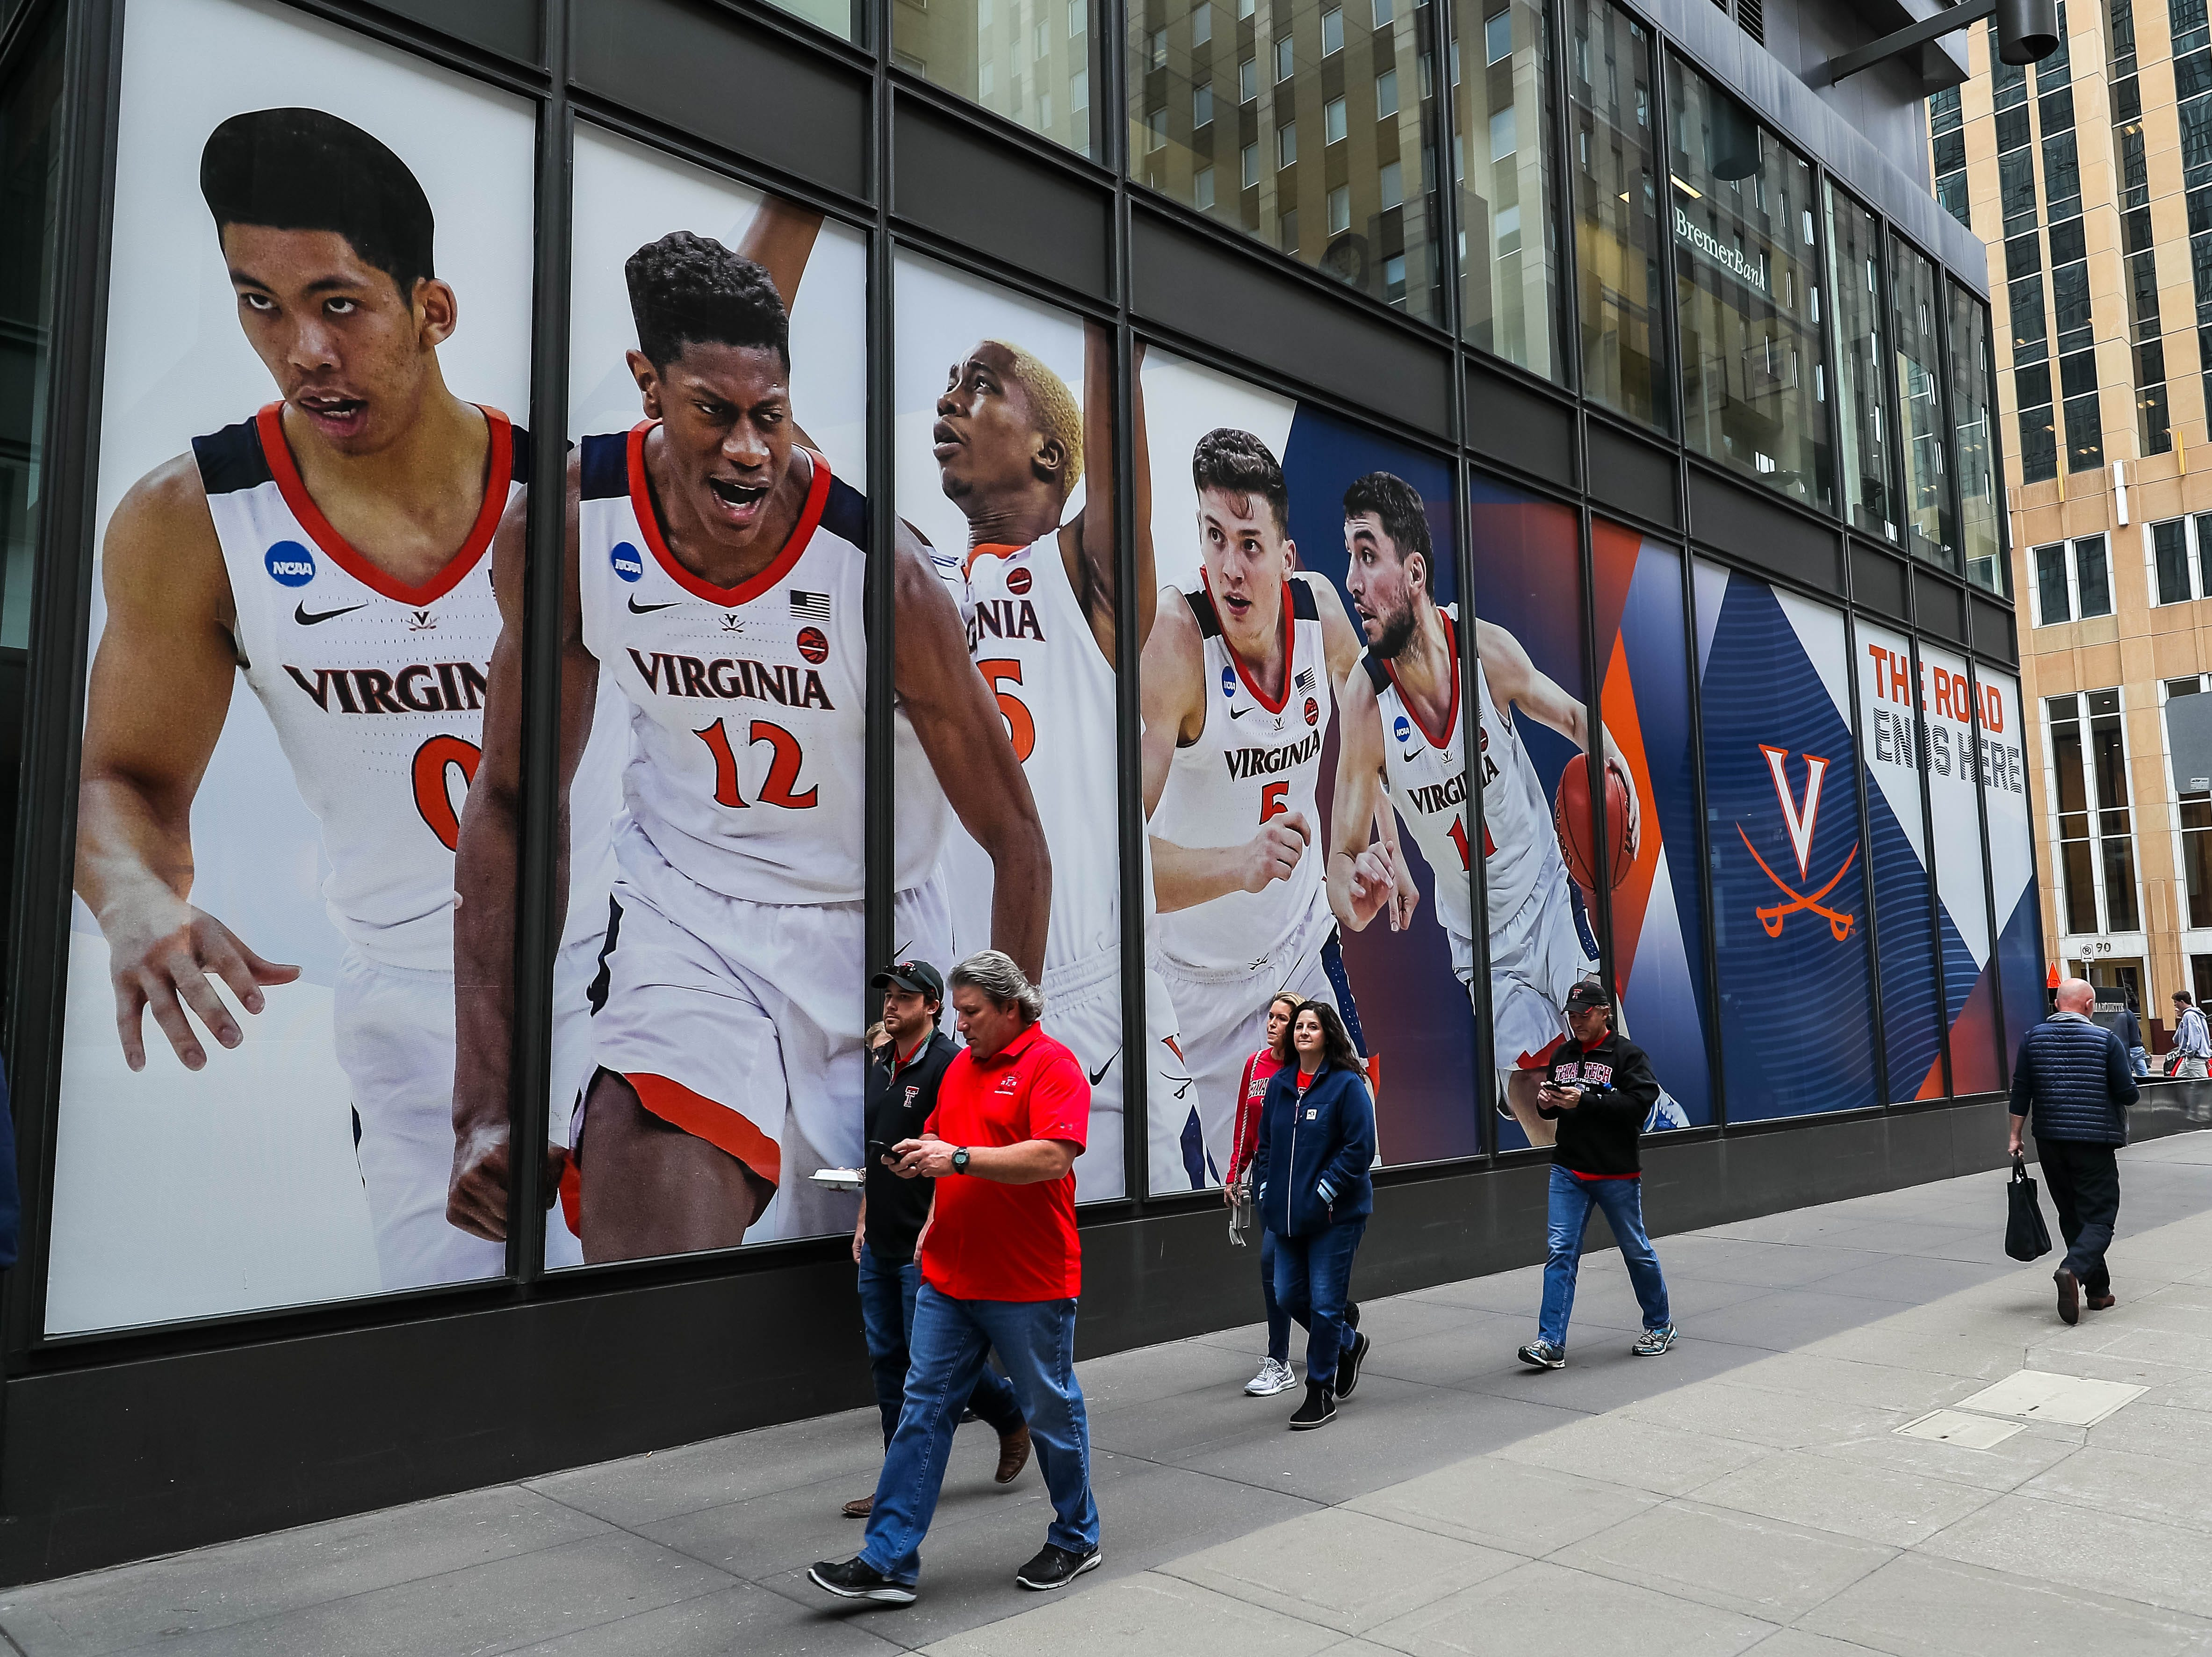 Apr 8, 2019; Minneapolis, MN, USA; Basketball fans walk past a Virginia Cavaliers banner outside before the championship game against the Texas Tech Red Raiders. Mandatory Credit: Brace Hemmelgarn-USA TODAY Sports